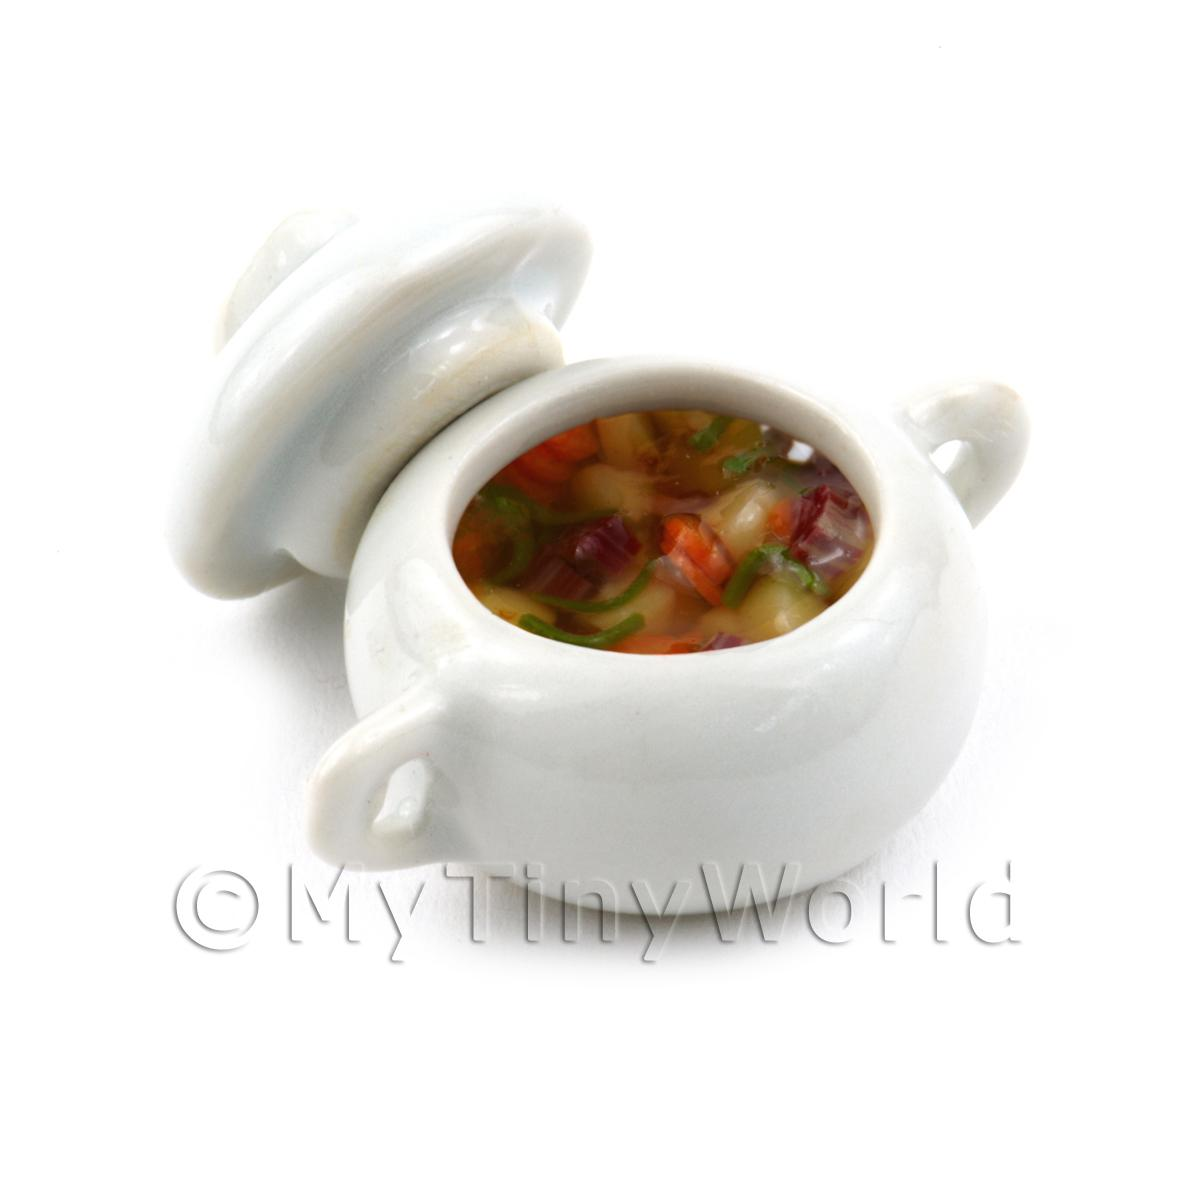 Dolls House Miniature Ceramic Pot with Casserole